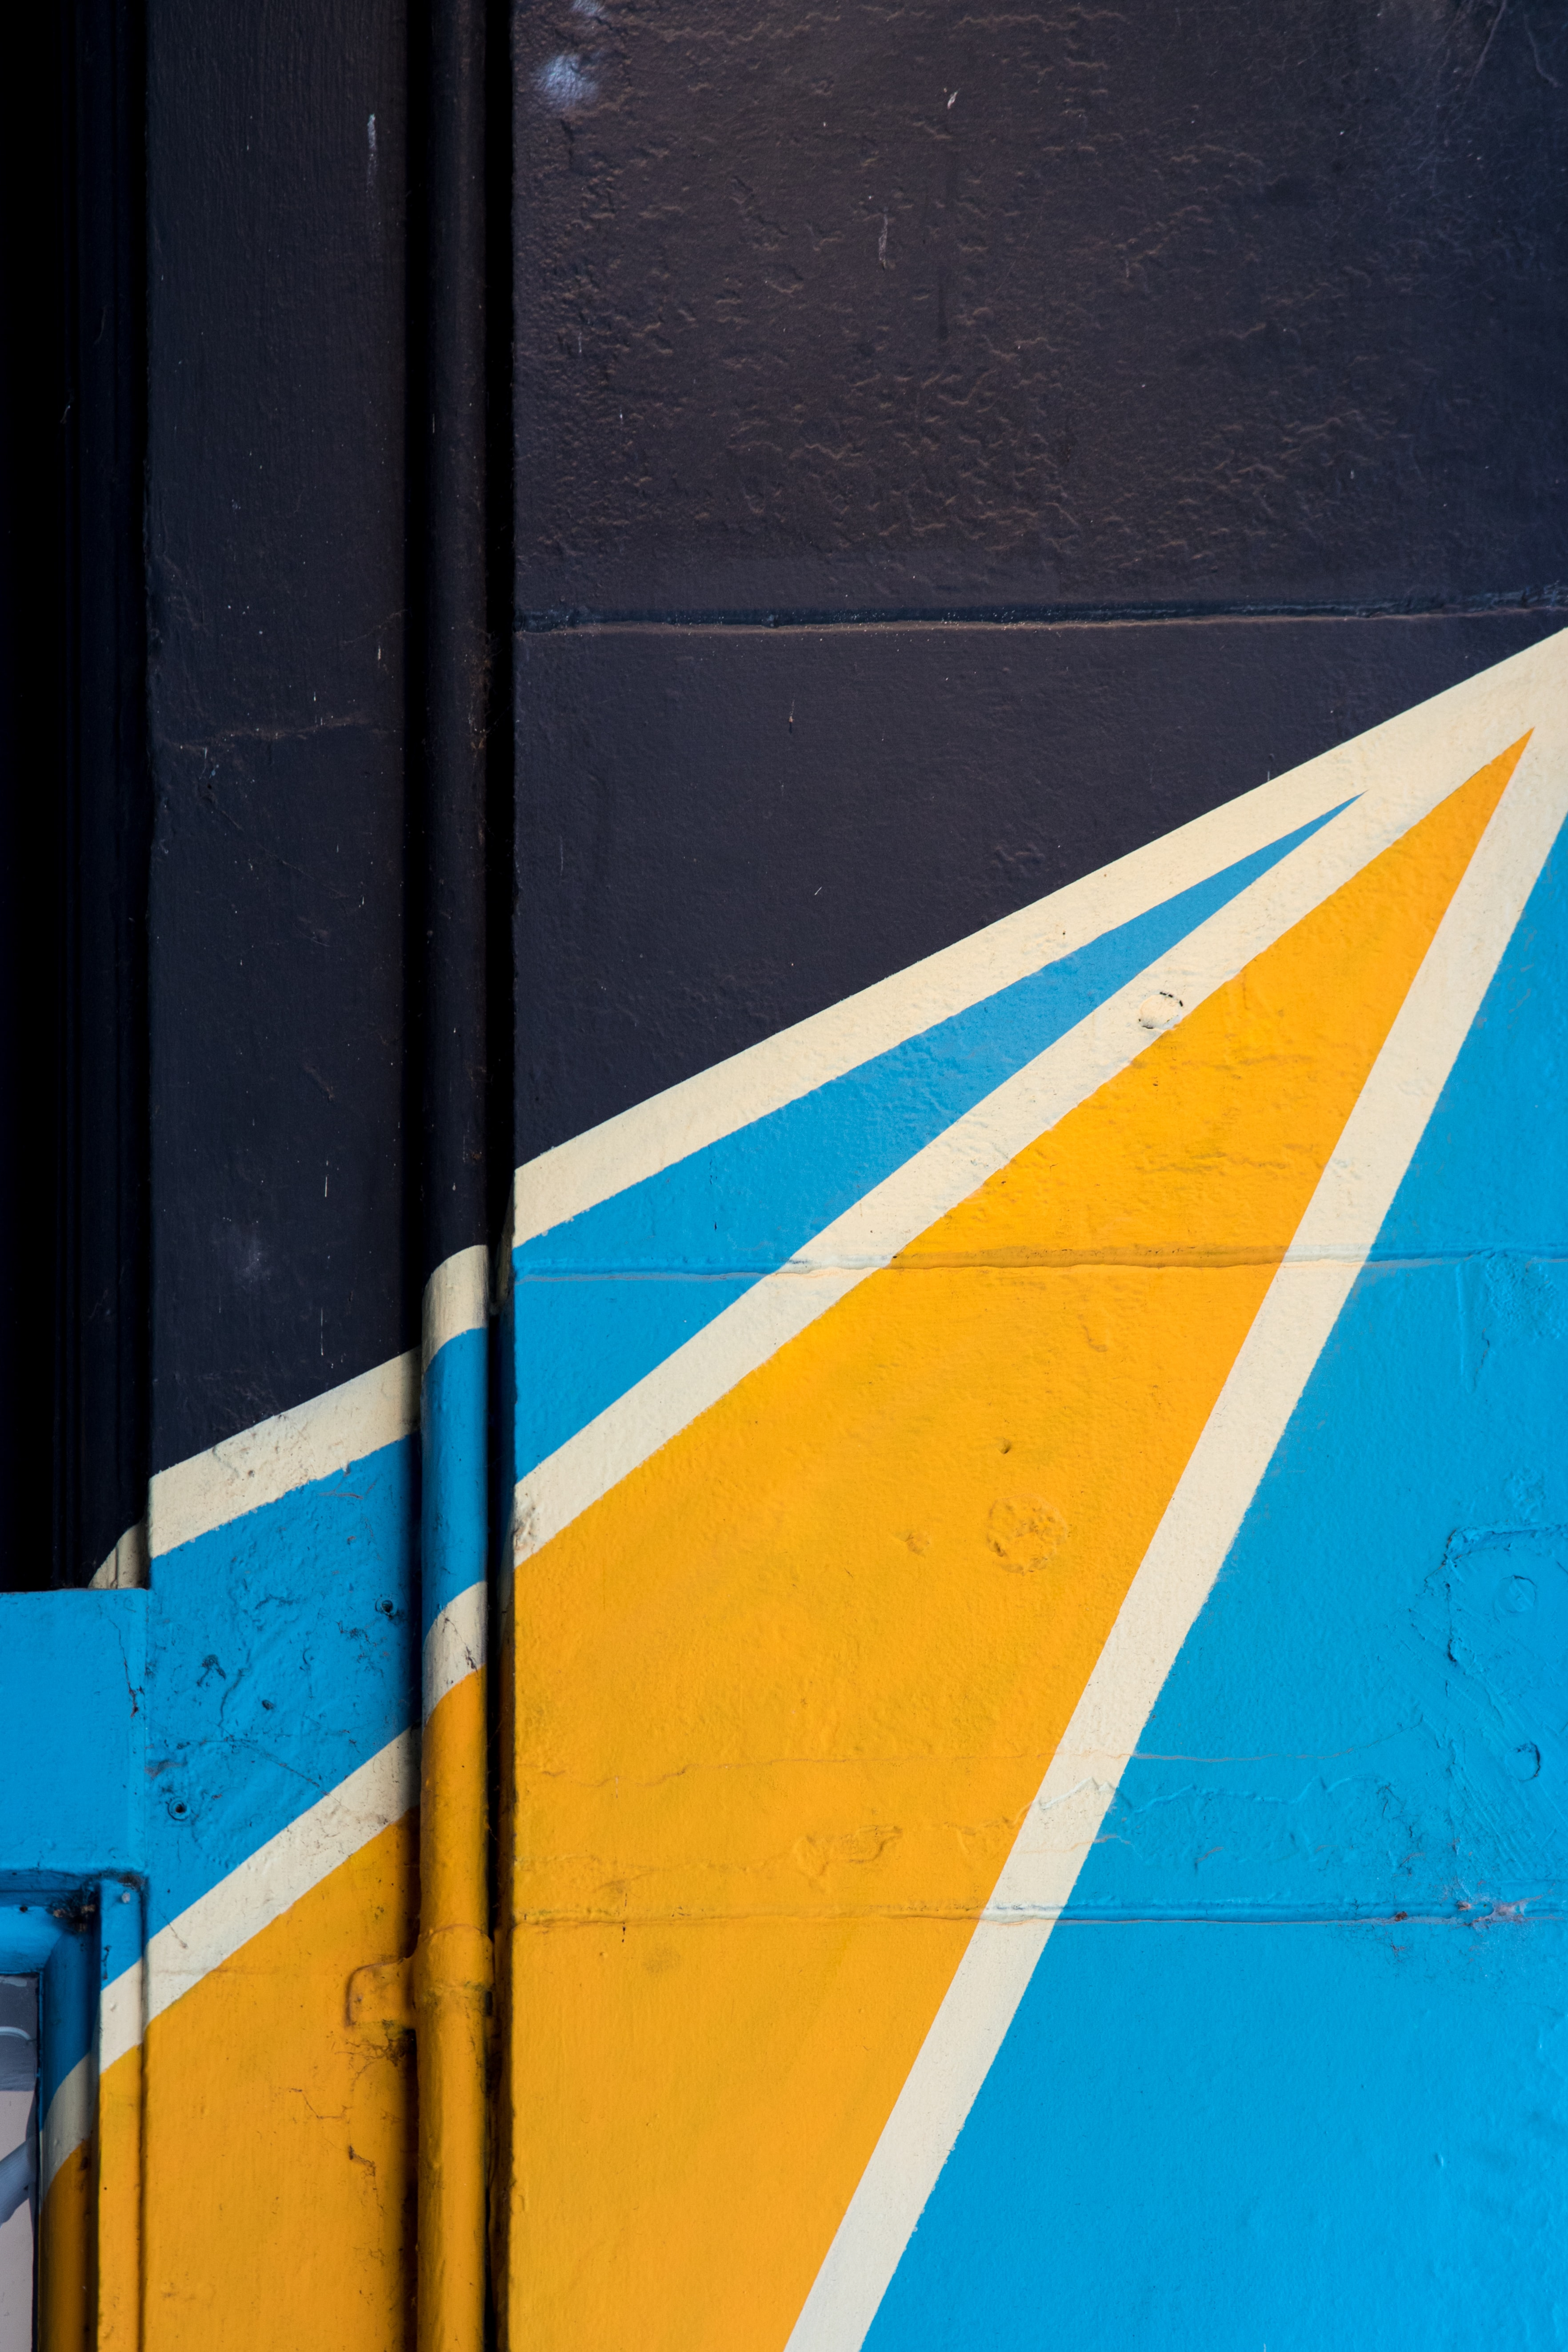 white, blue, and yellow mural painted on building wall